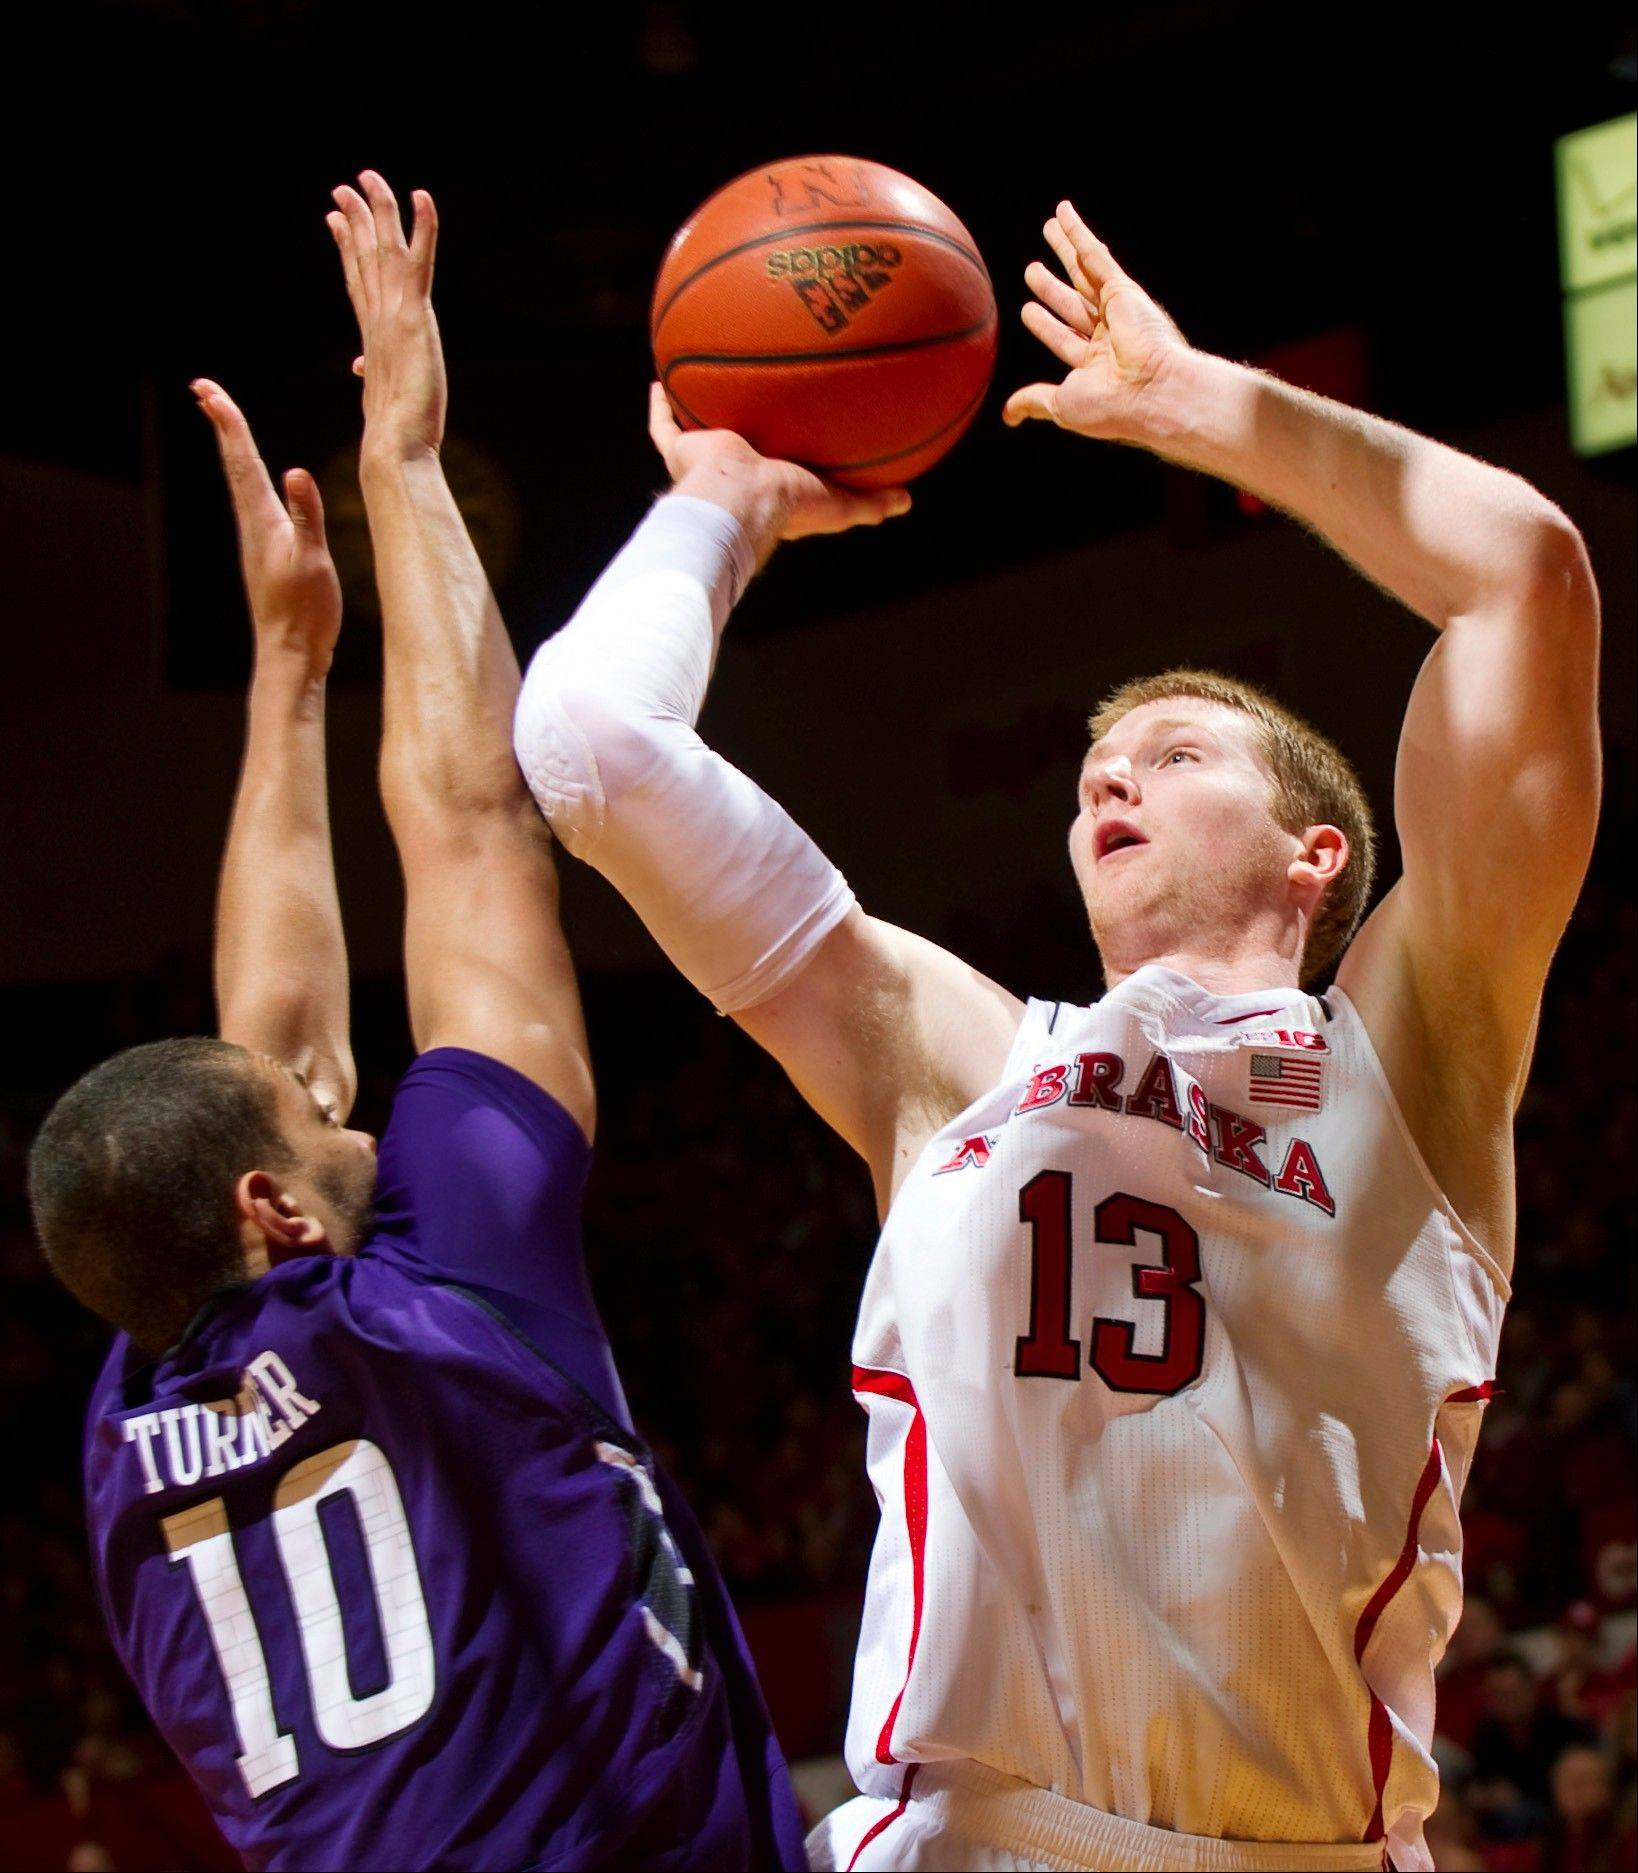 Nebraska's Brandon Ubel (13) shoots over Northwestern's Mike Turner (10) during the first half of their NCAA college basketball game, Saturday, Jan. 26, 2013, in Lincoln, Neb. (AP Photo/The Journal-Star, Matt Ryerson) LOCAL TV OUT; KOLN-TV OUT; KGIN-TV OUT; KLKN-TV OUT